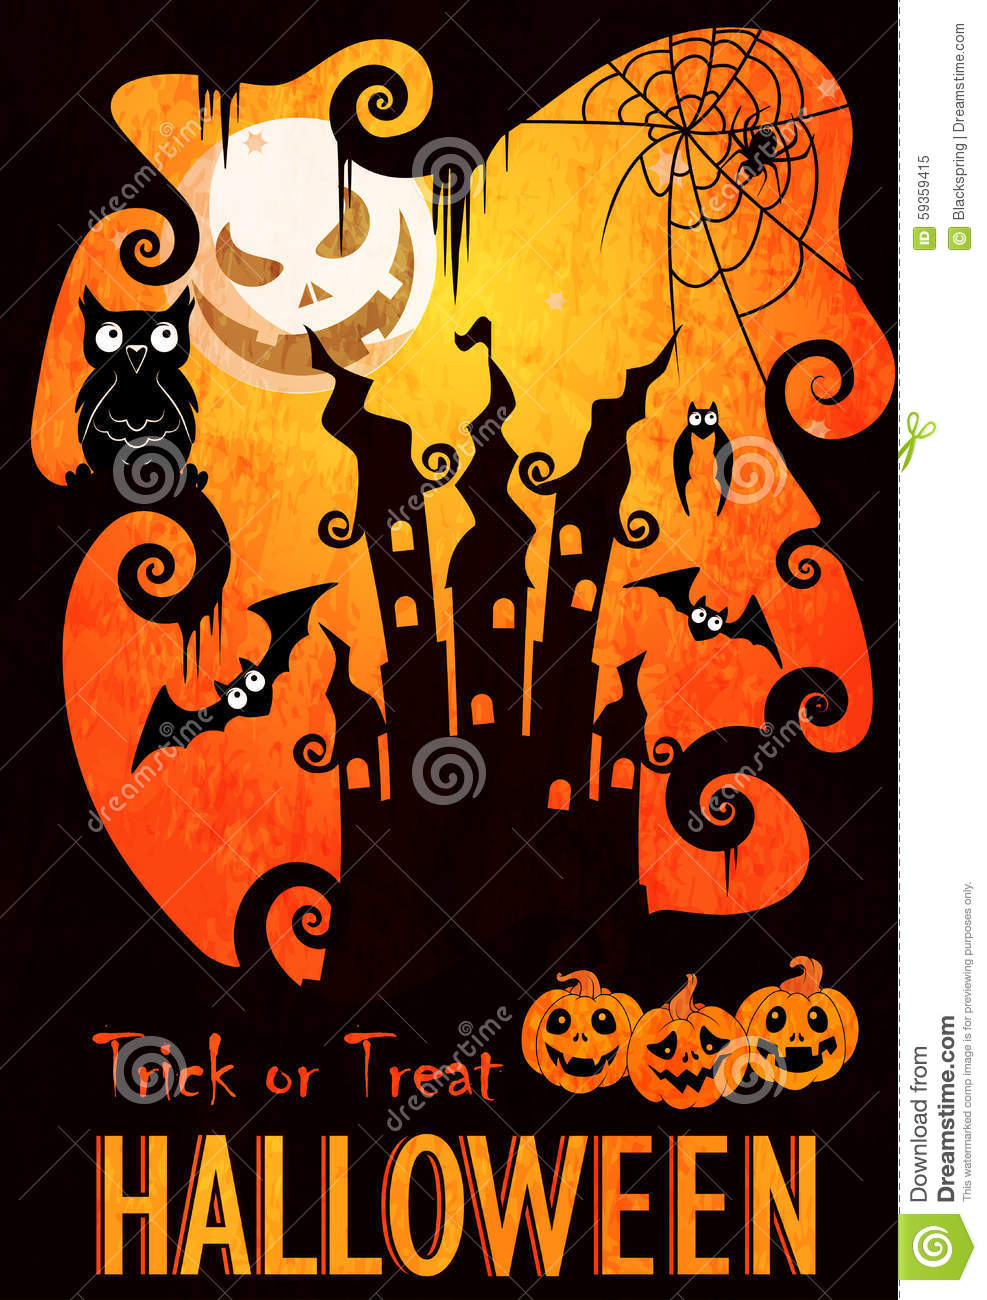 Halloween Poster Template Stock Vector - Image: 59359415